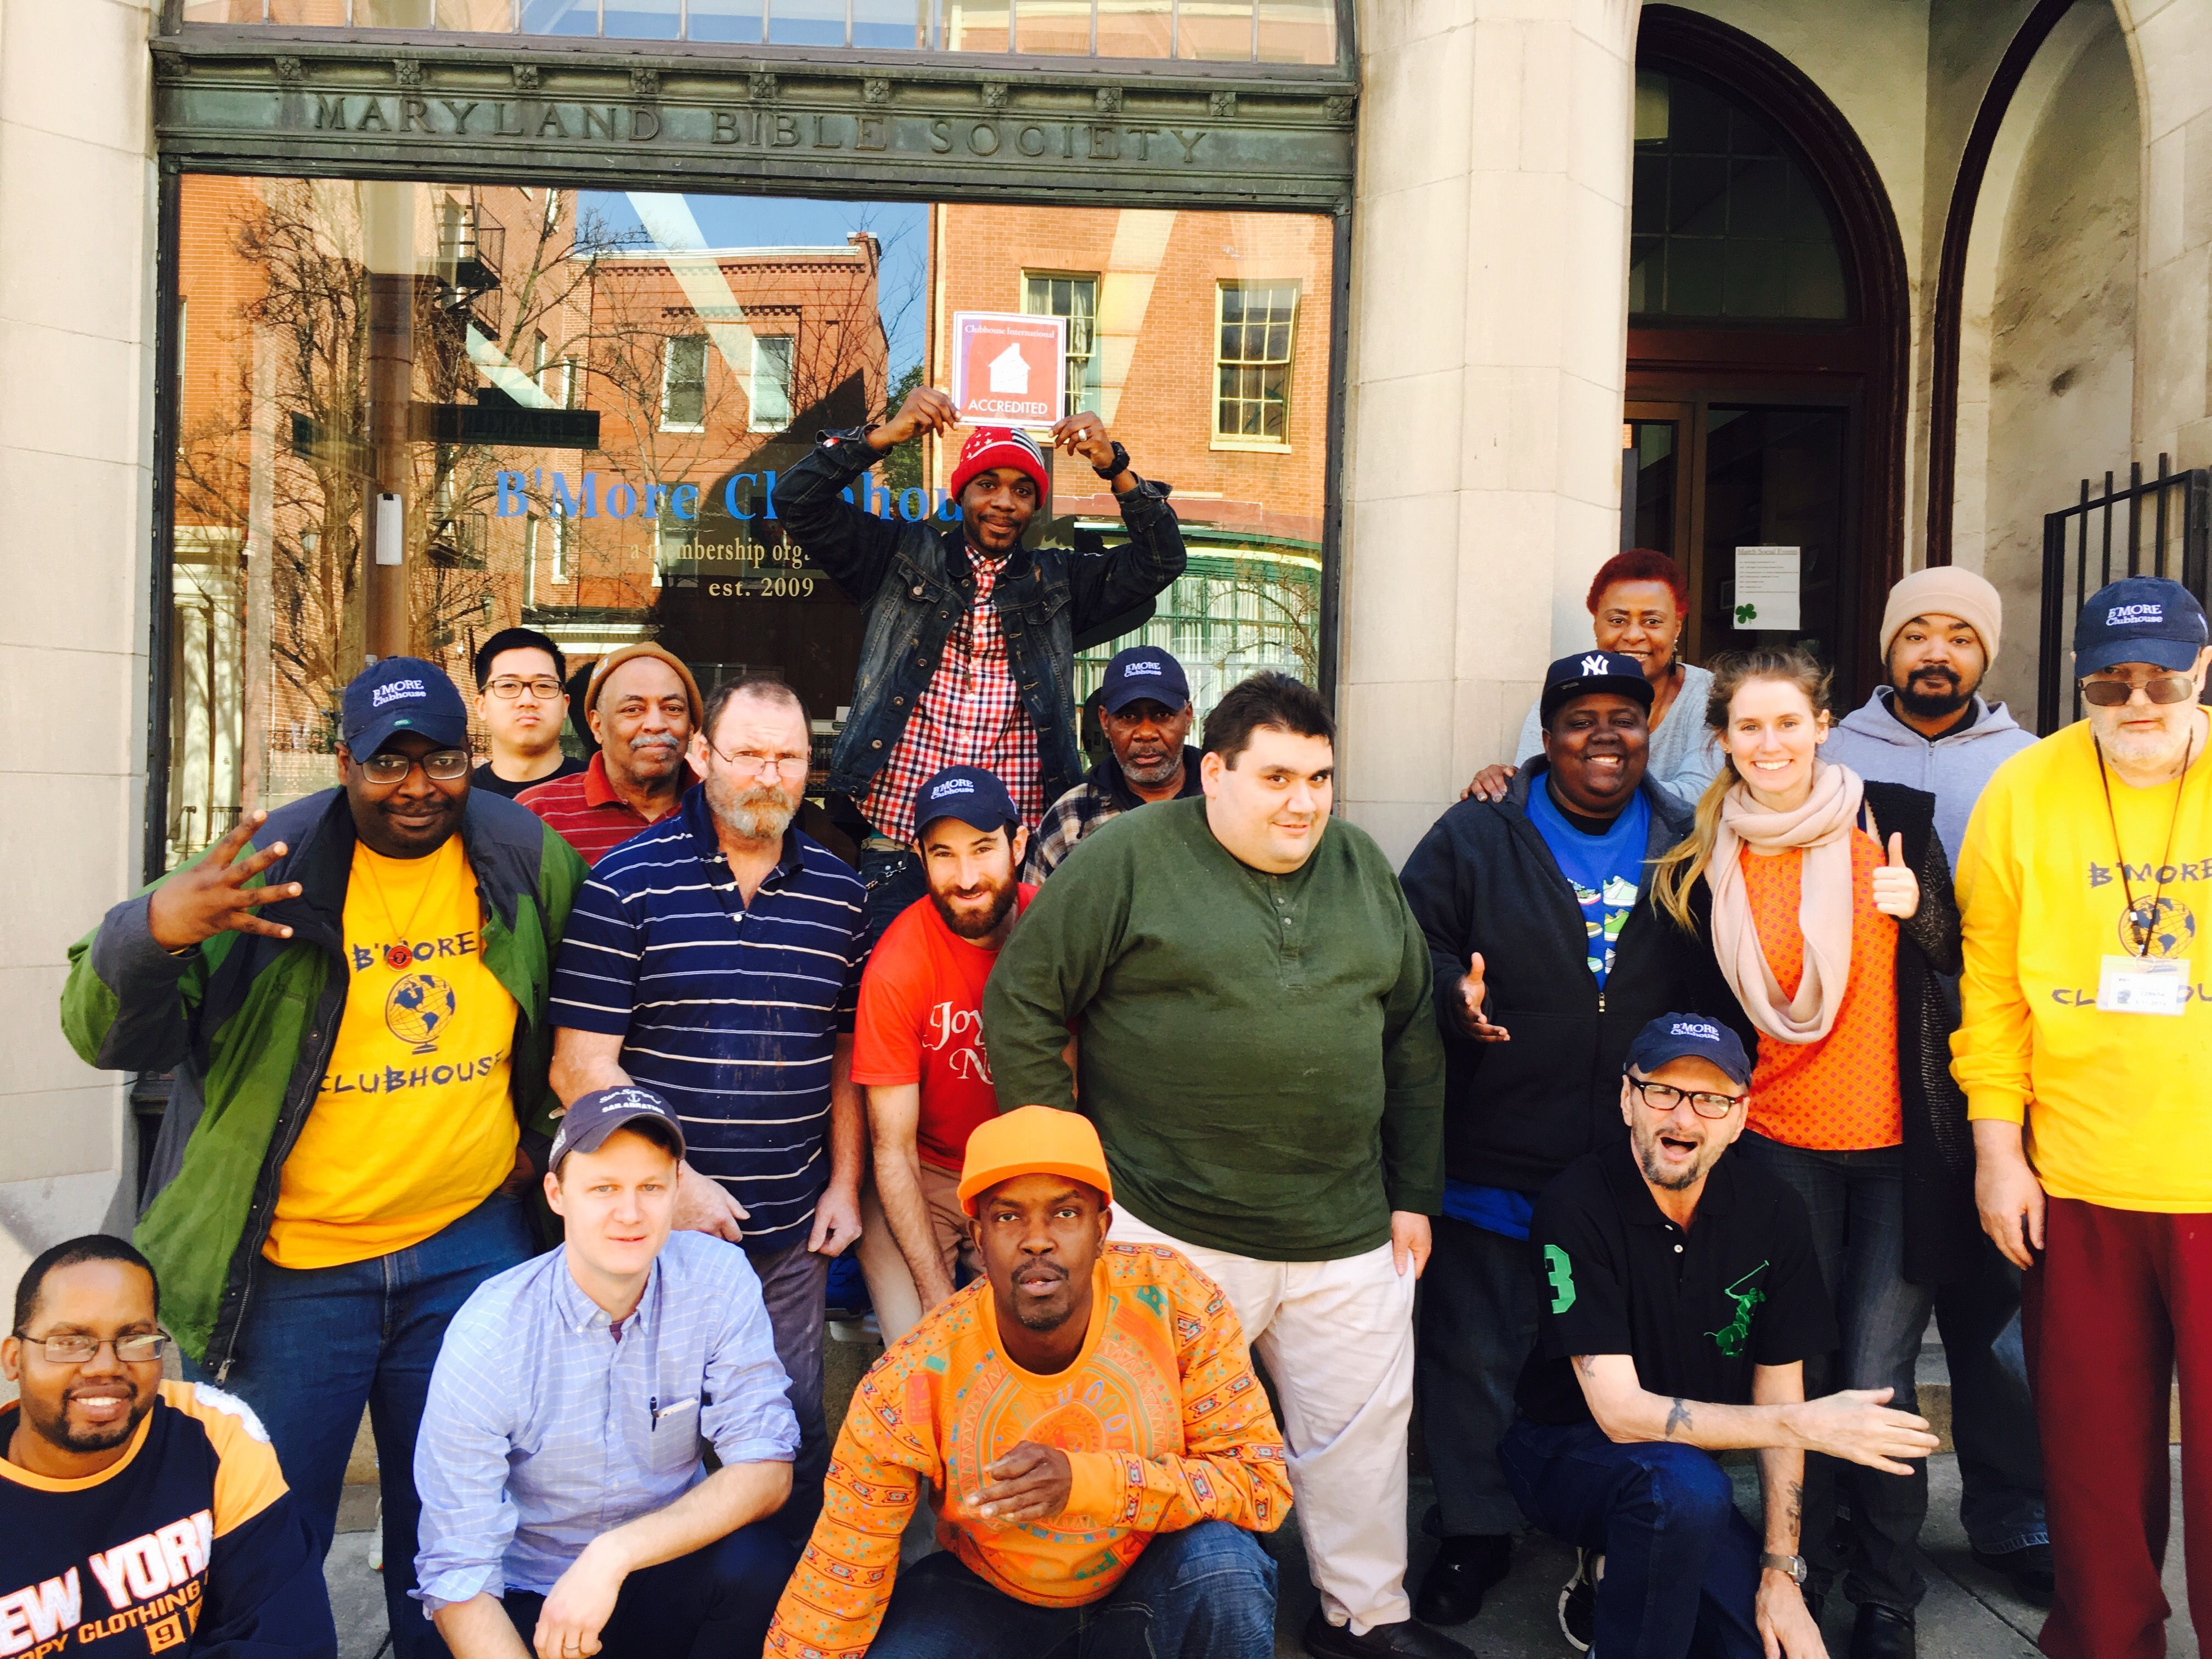 The Bmore Clubhouse Meetup